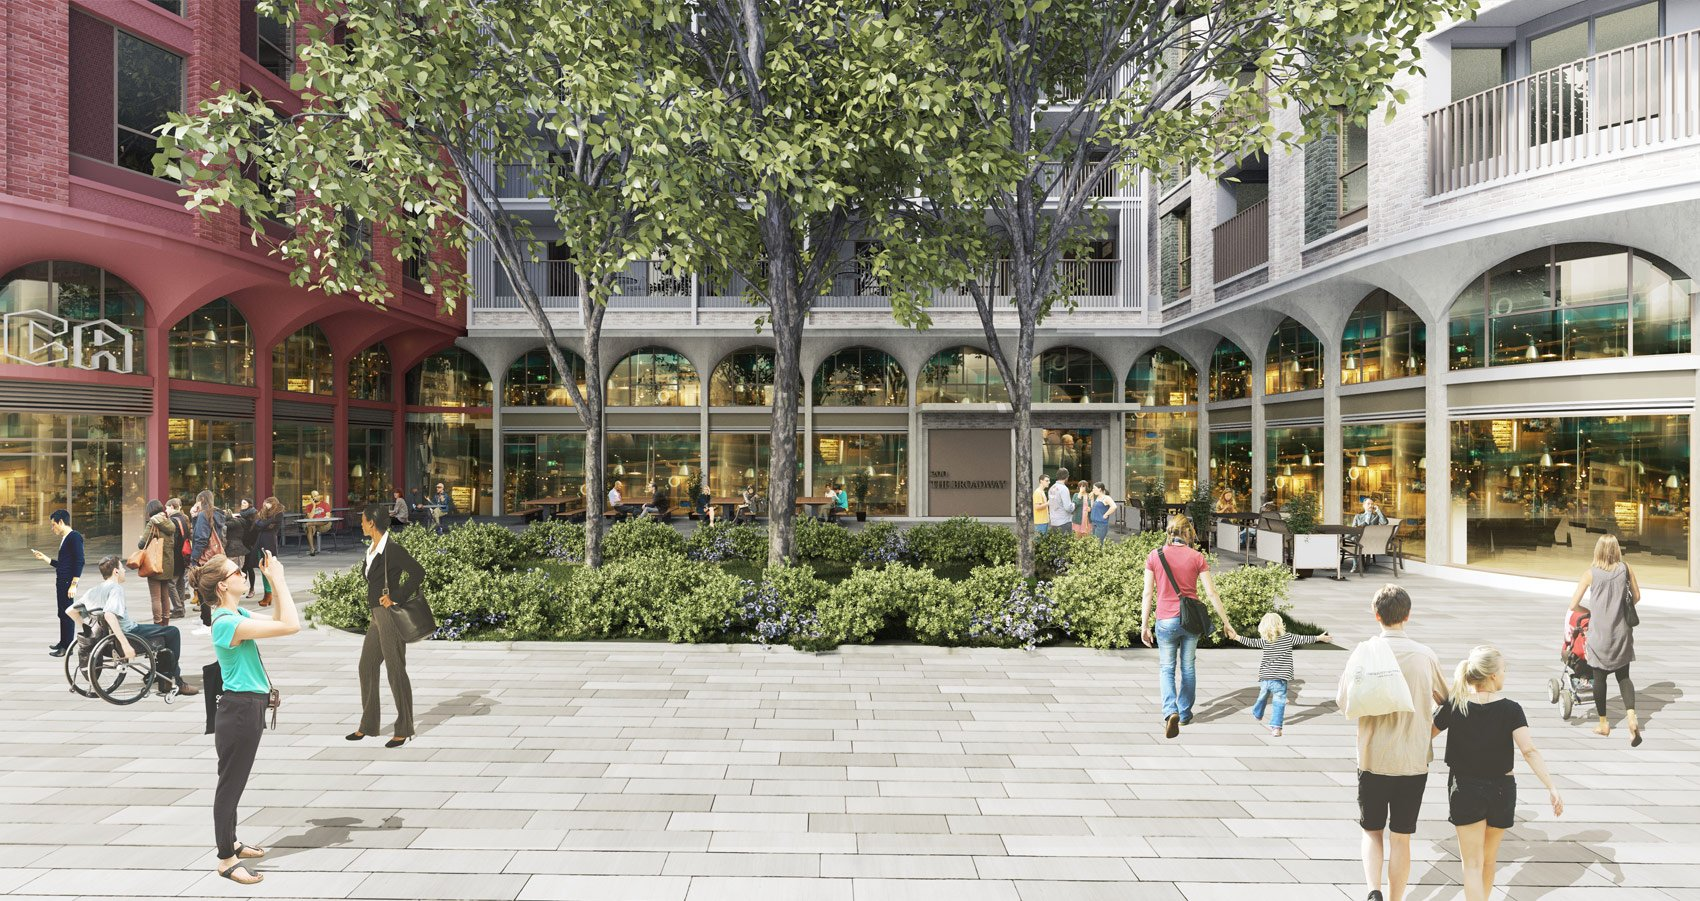 196-200 The Broadway, Wimbledon, View looking into the Courtyard